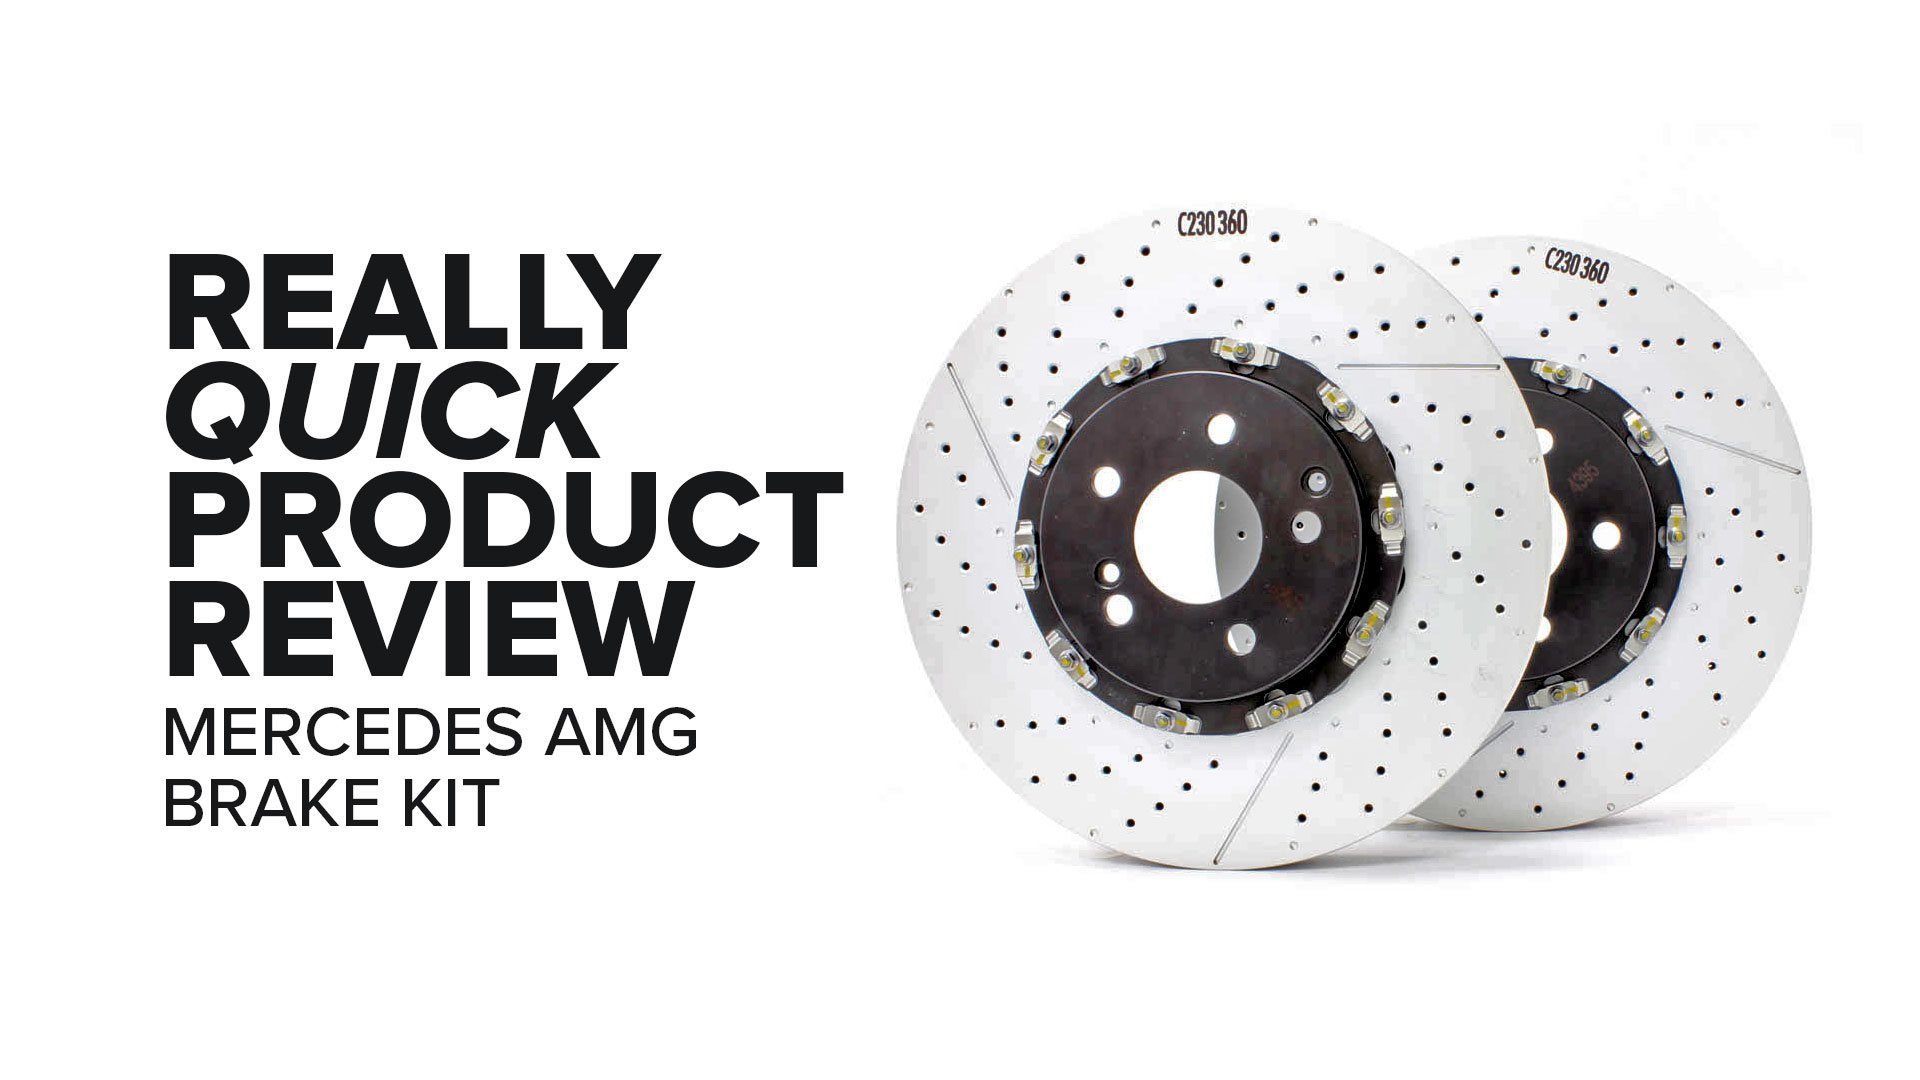 Mercedes-Benz C63 AMG, E63 AMG, And More Brembo Brake Kit - Specs And Product Review